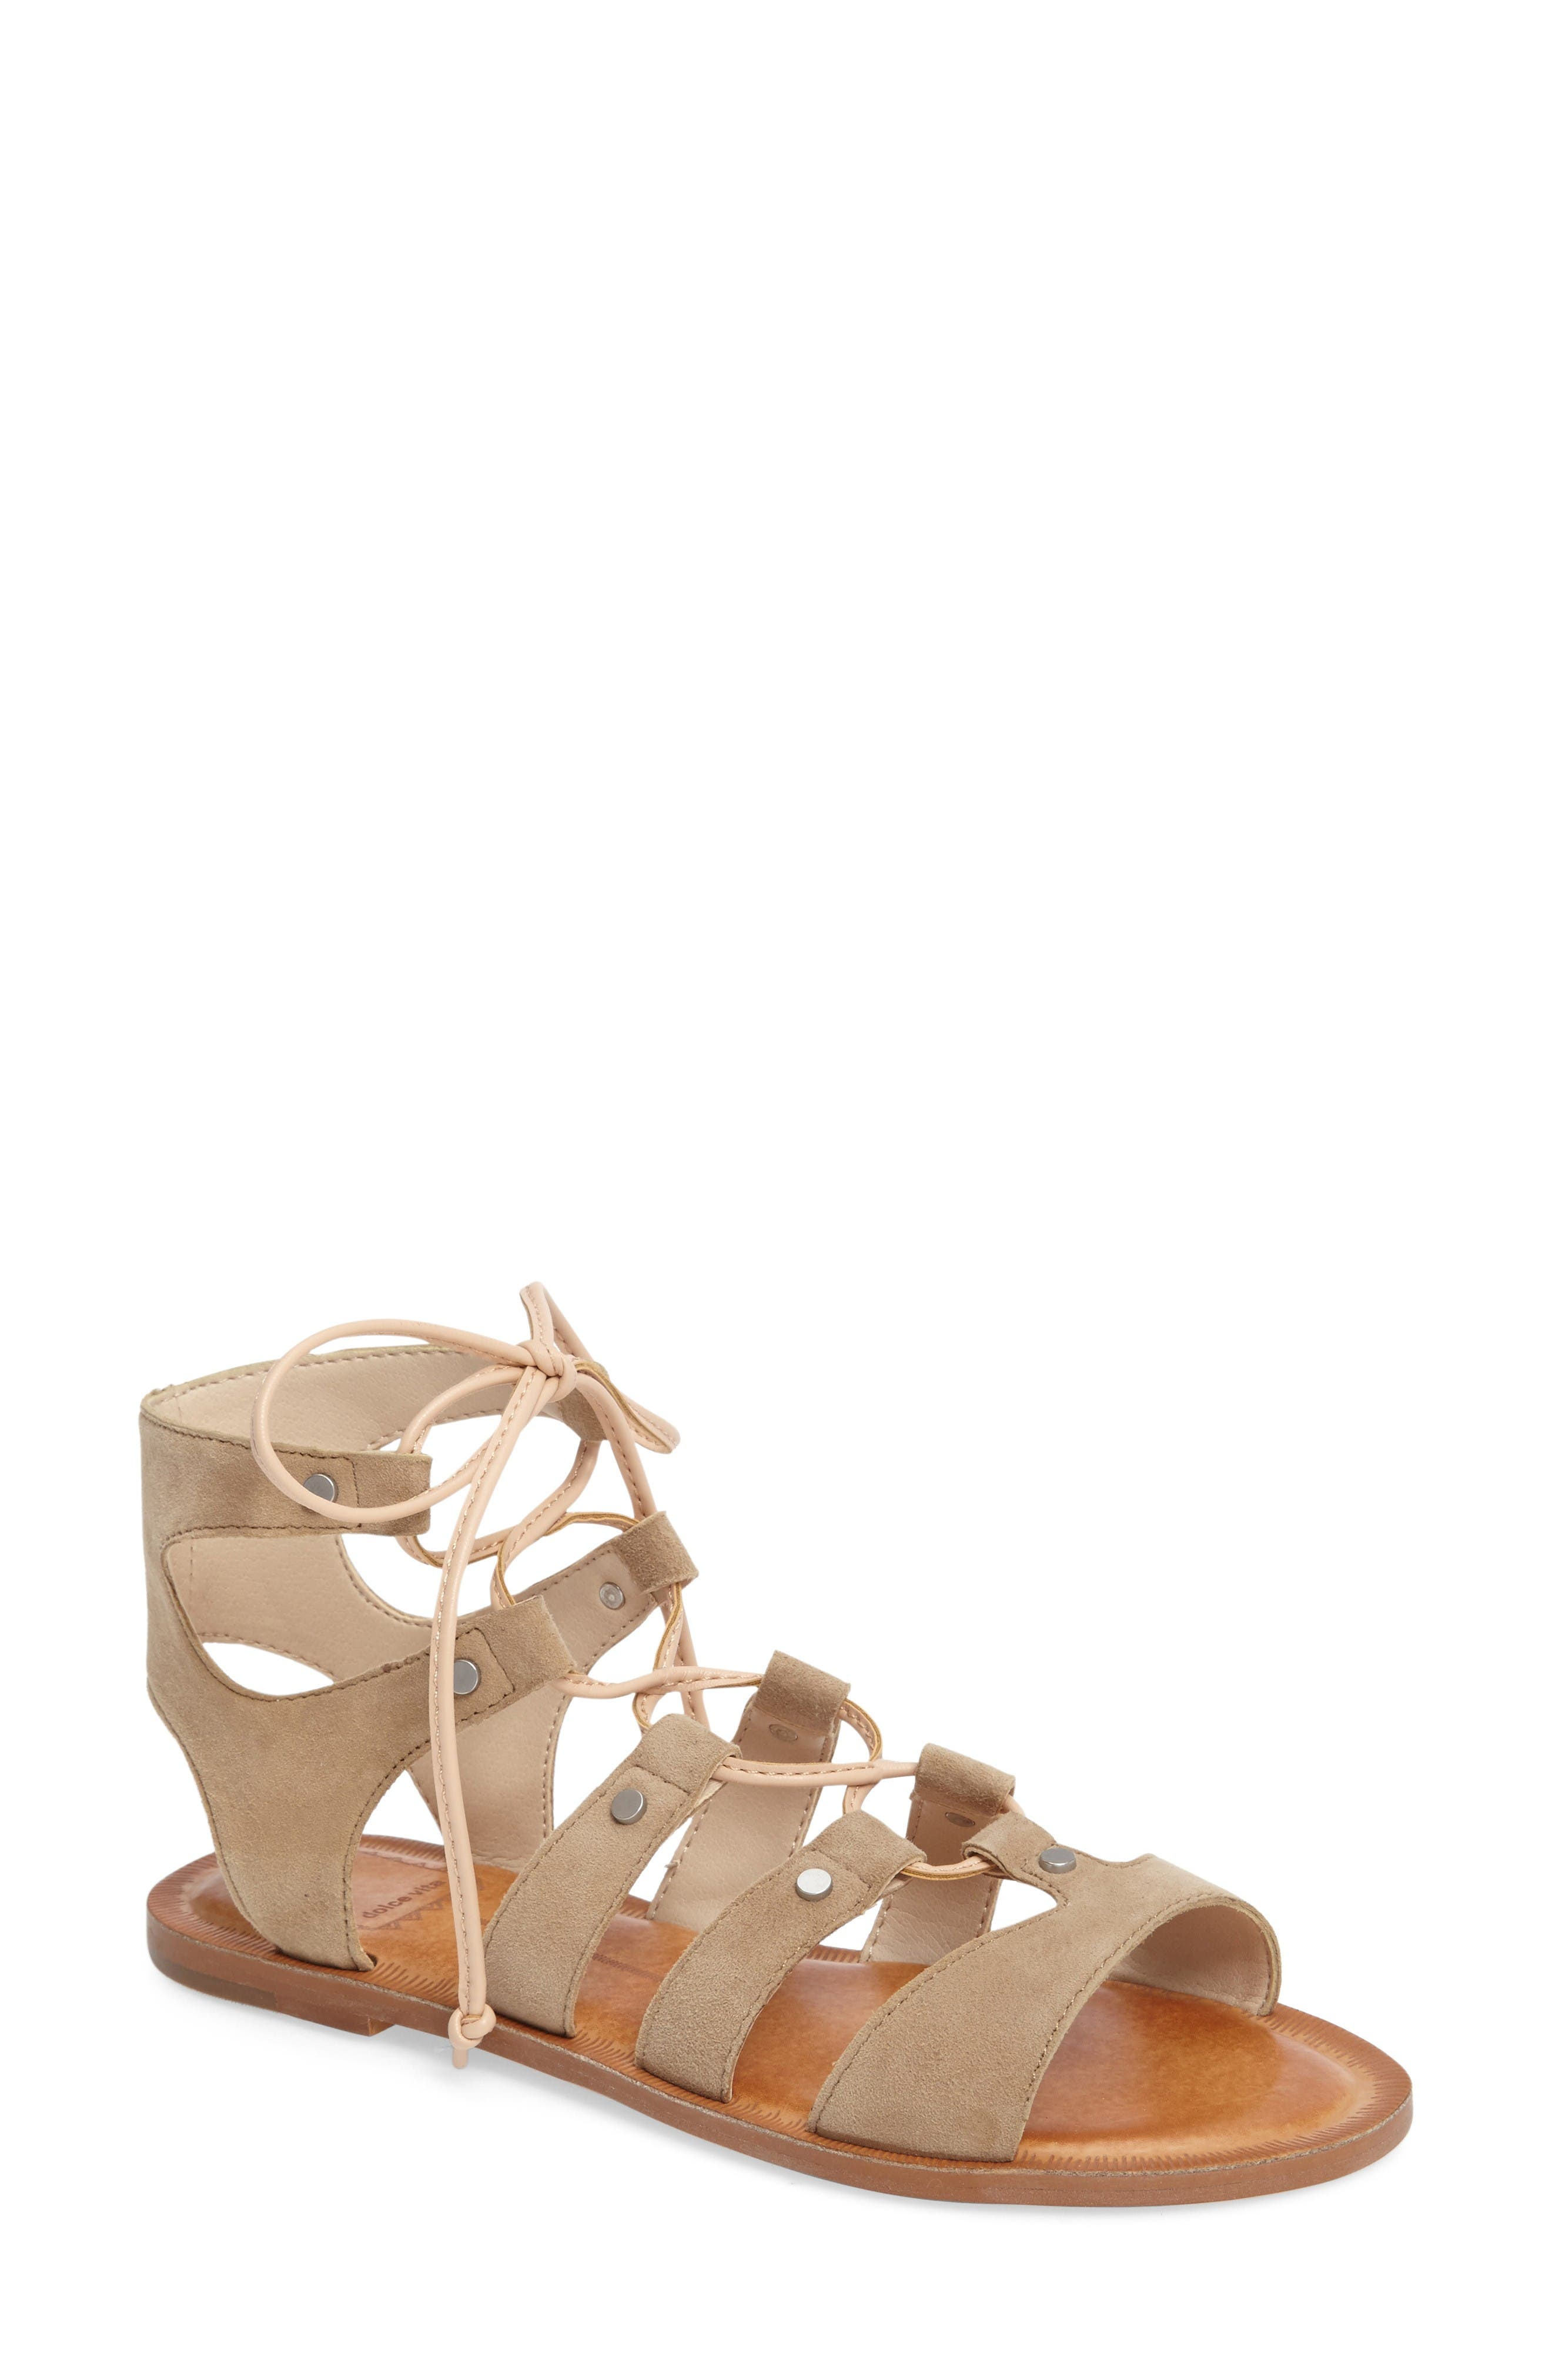 Alternate Image 1 Selected - Dolce Vita 'Jasmyn' Ghillie Sandal (Women)